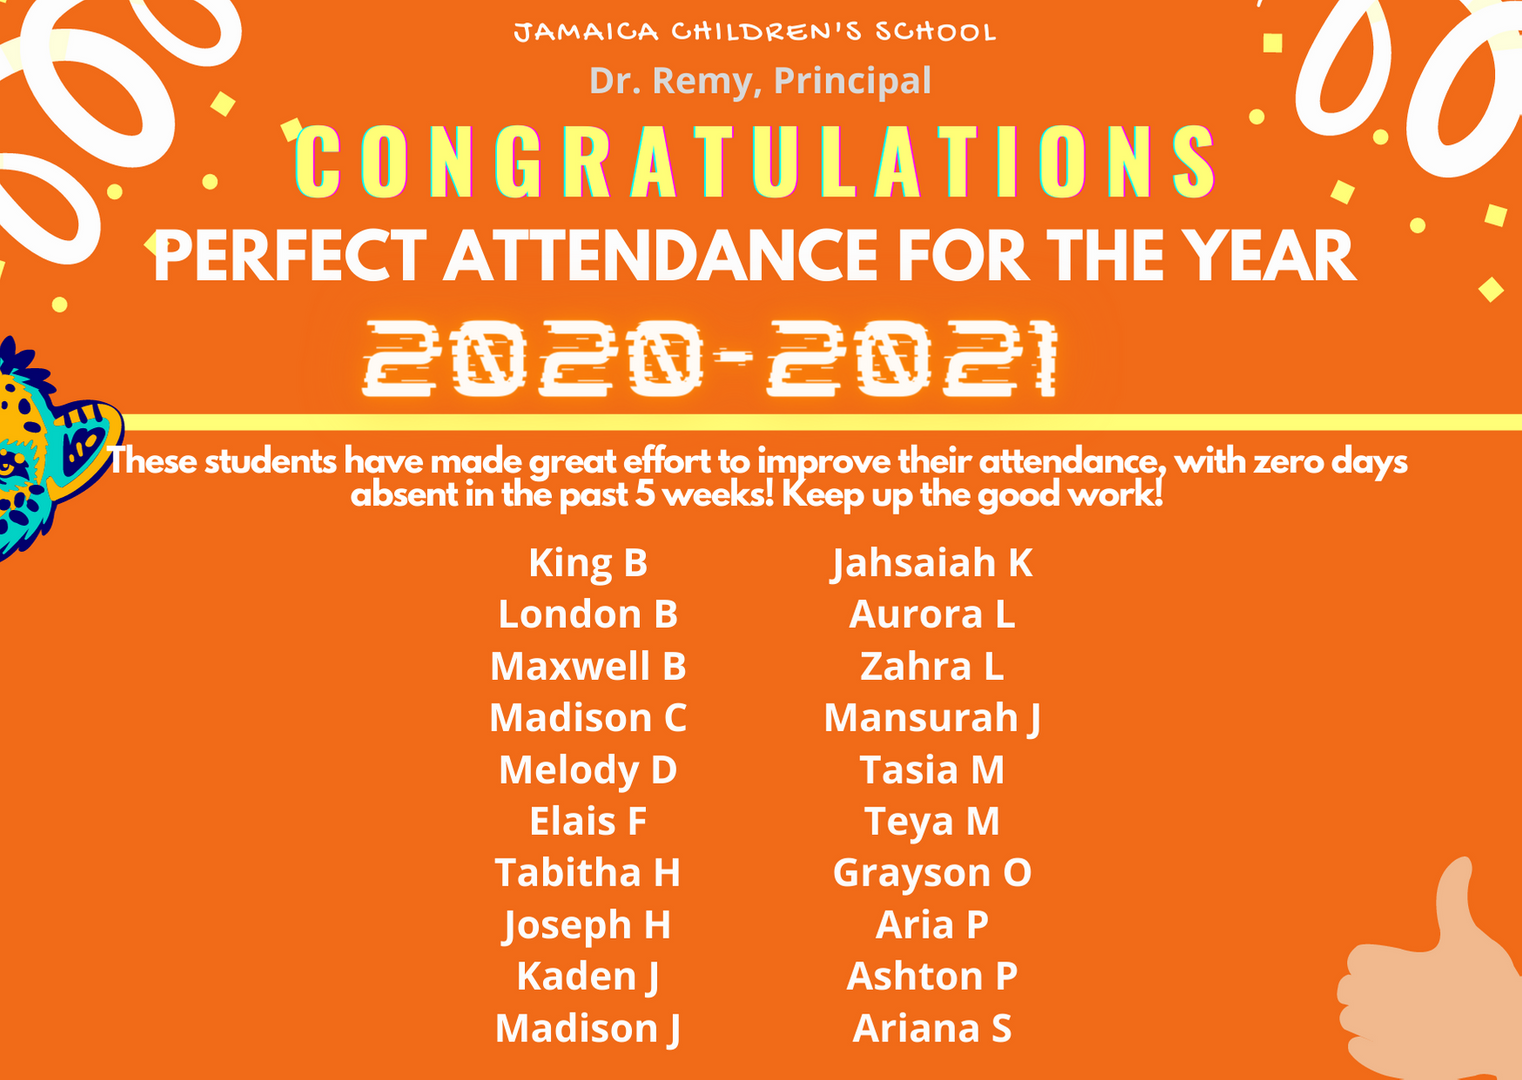 Perfect Attendance for the year.